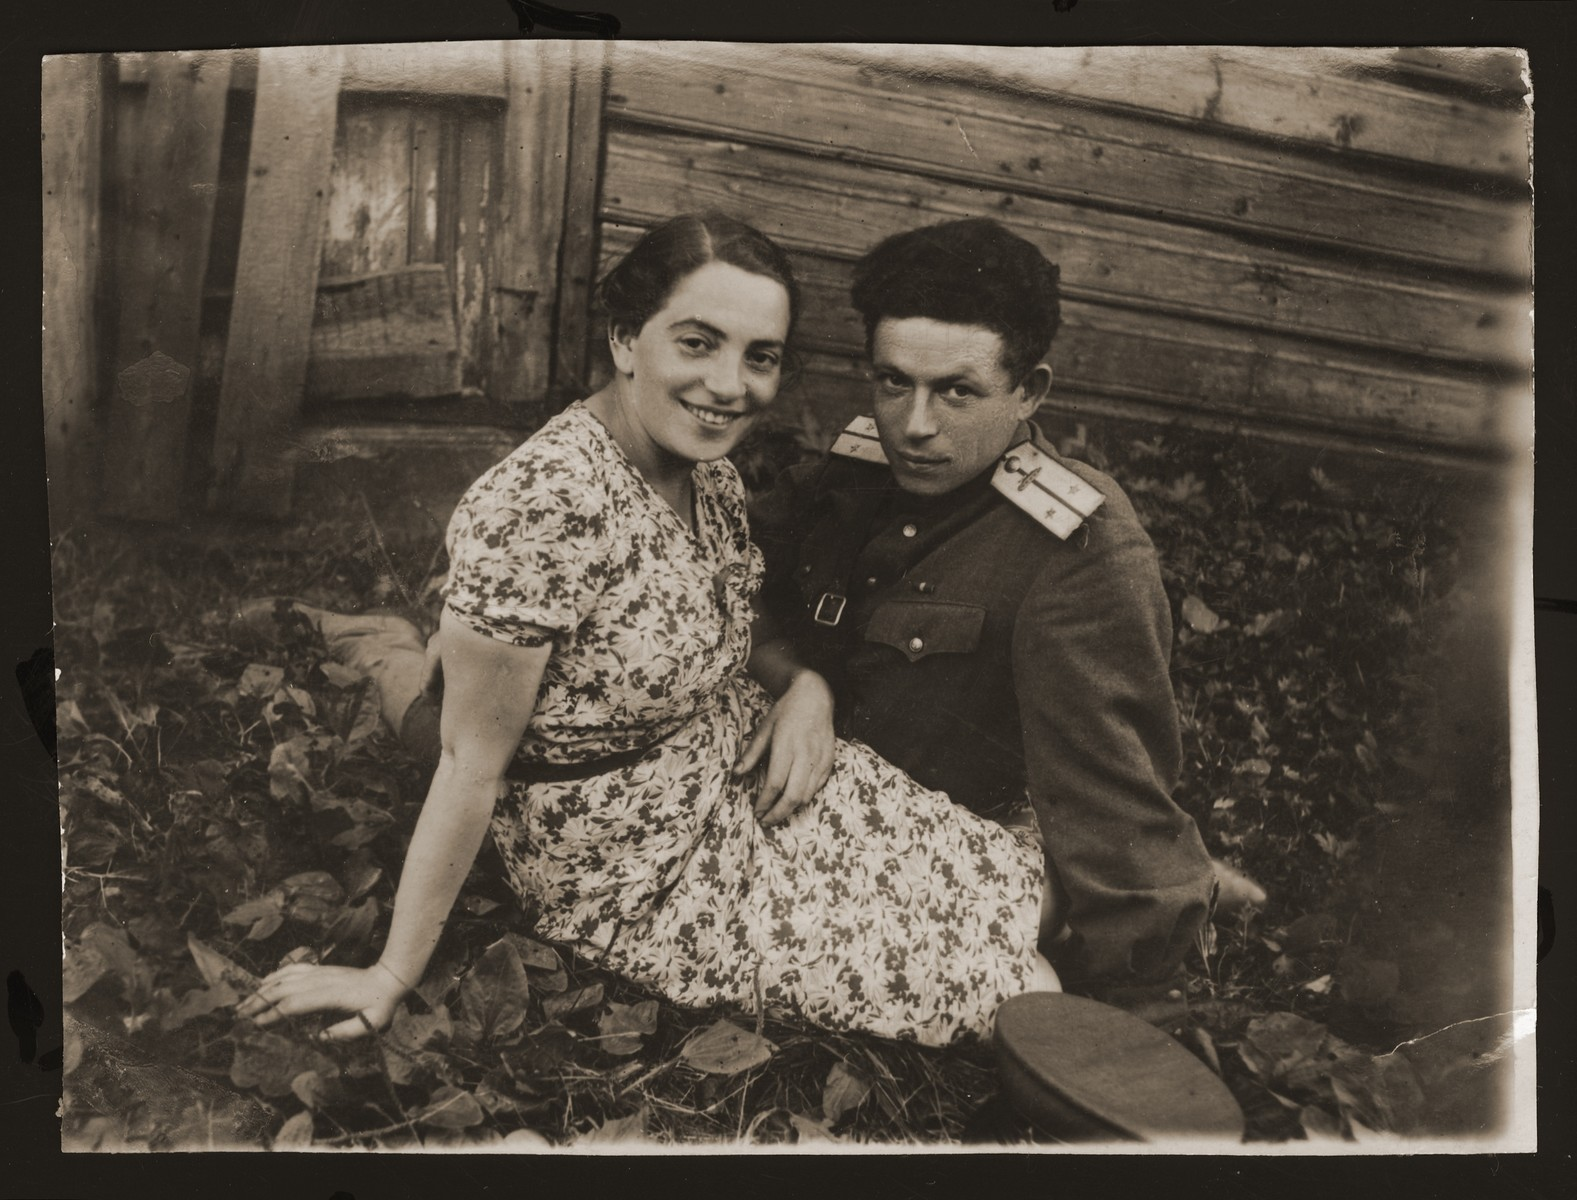 Abram and Estera (Ajzen) Lewin sit outside a wooden cabin in Gorky.